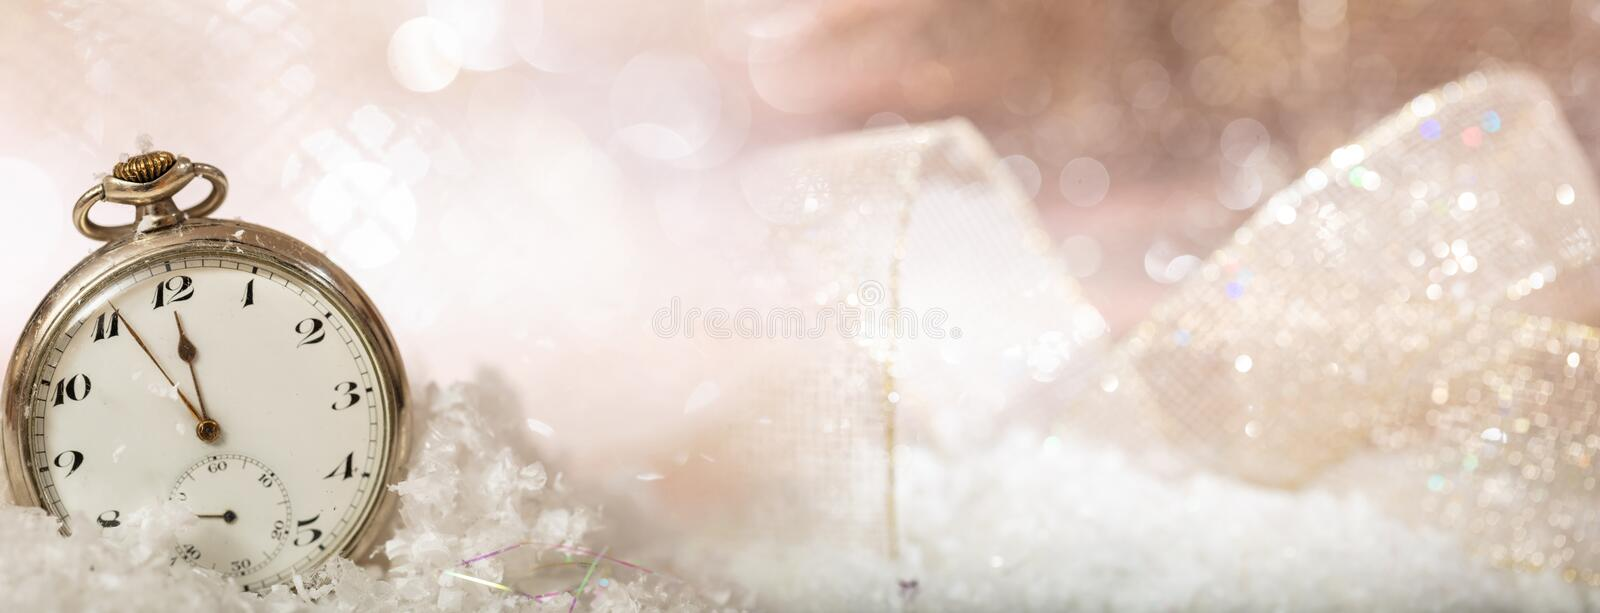 New Years eve party celebration. Minutes to midnight on an old watch, bokeh festive background. Banner royalty free stock images